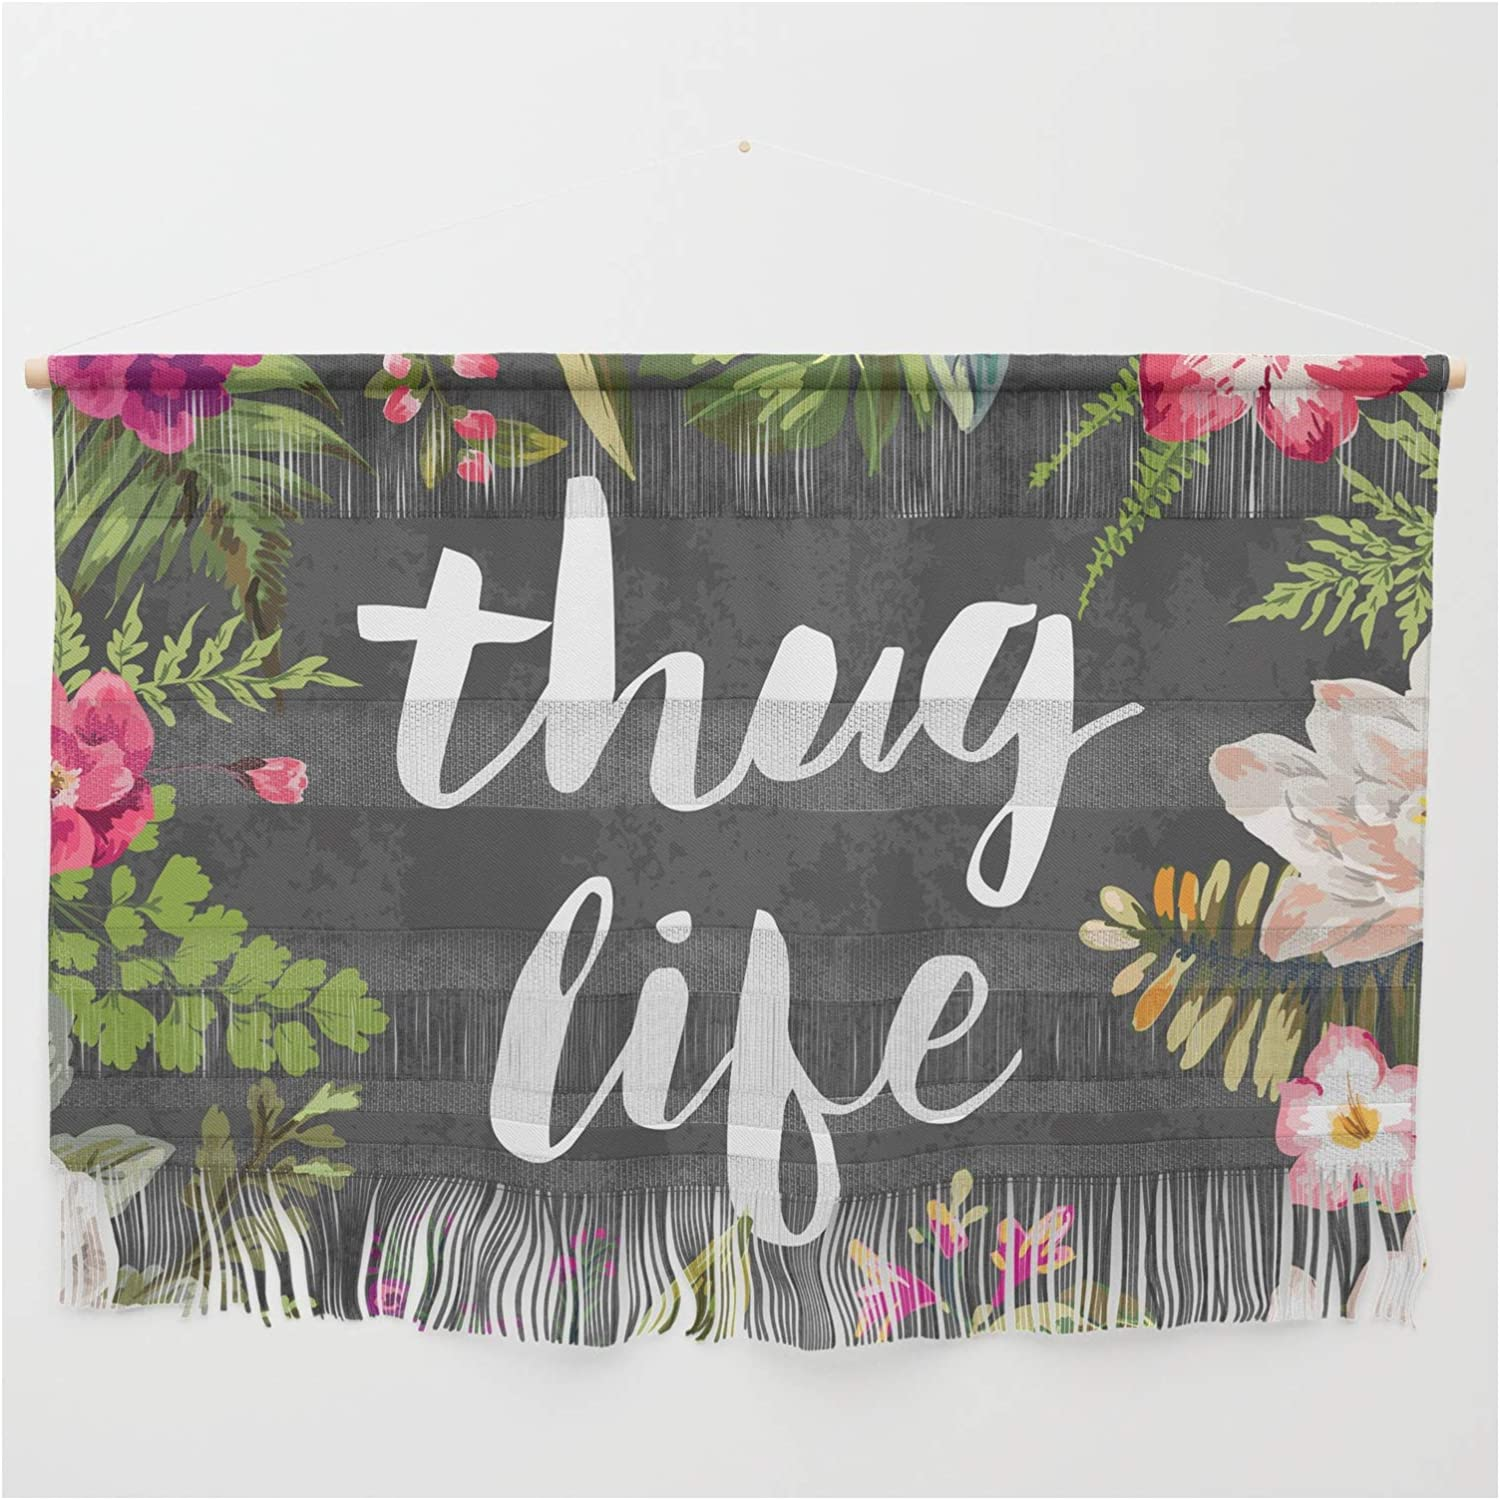 Society6 Thug Life by Text Guy Popular popular on Hanging Courier shipping free shipping 47